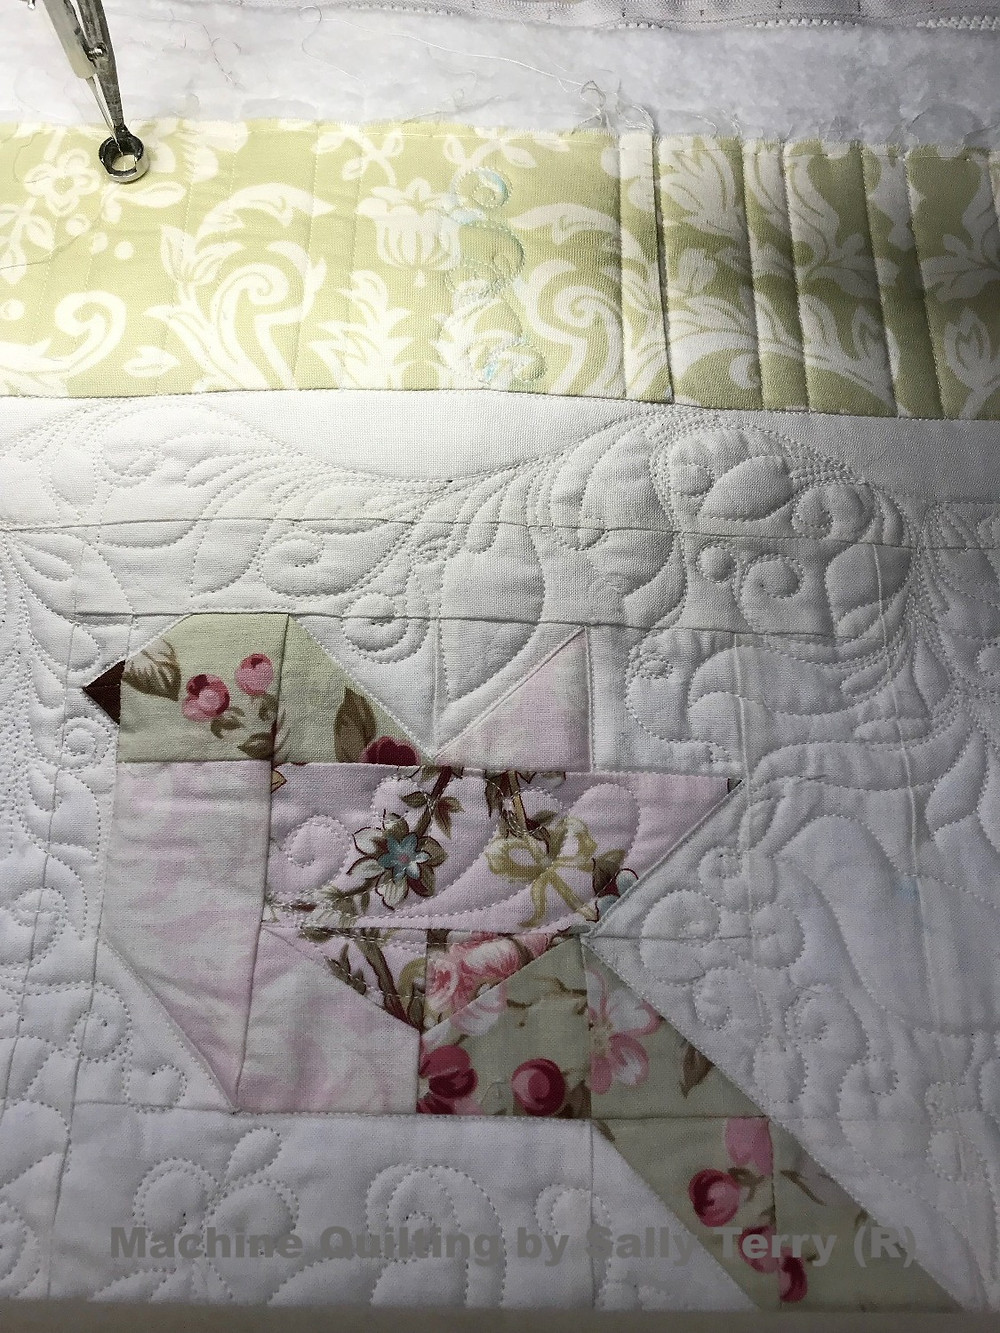 Free Motion Machine Quilting of Feathers by Sally Terry